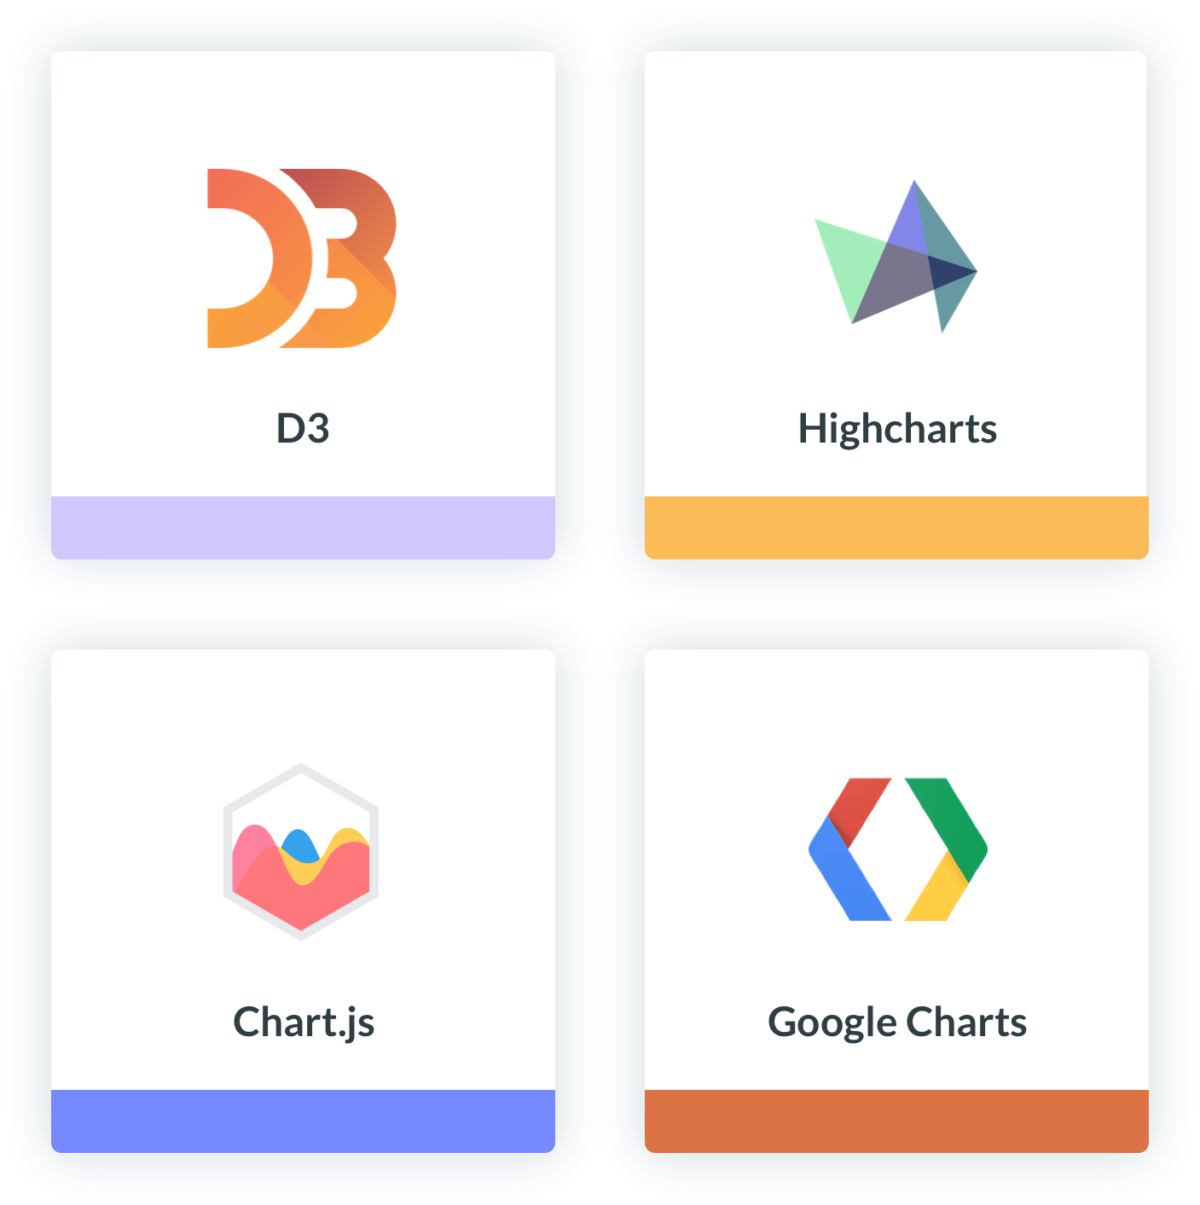 charting library logos D3, HighCharts, Charts.js, and Google Charts